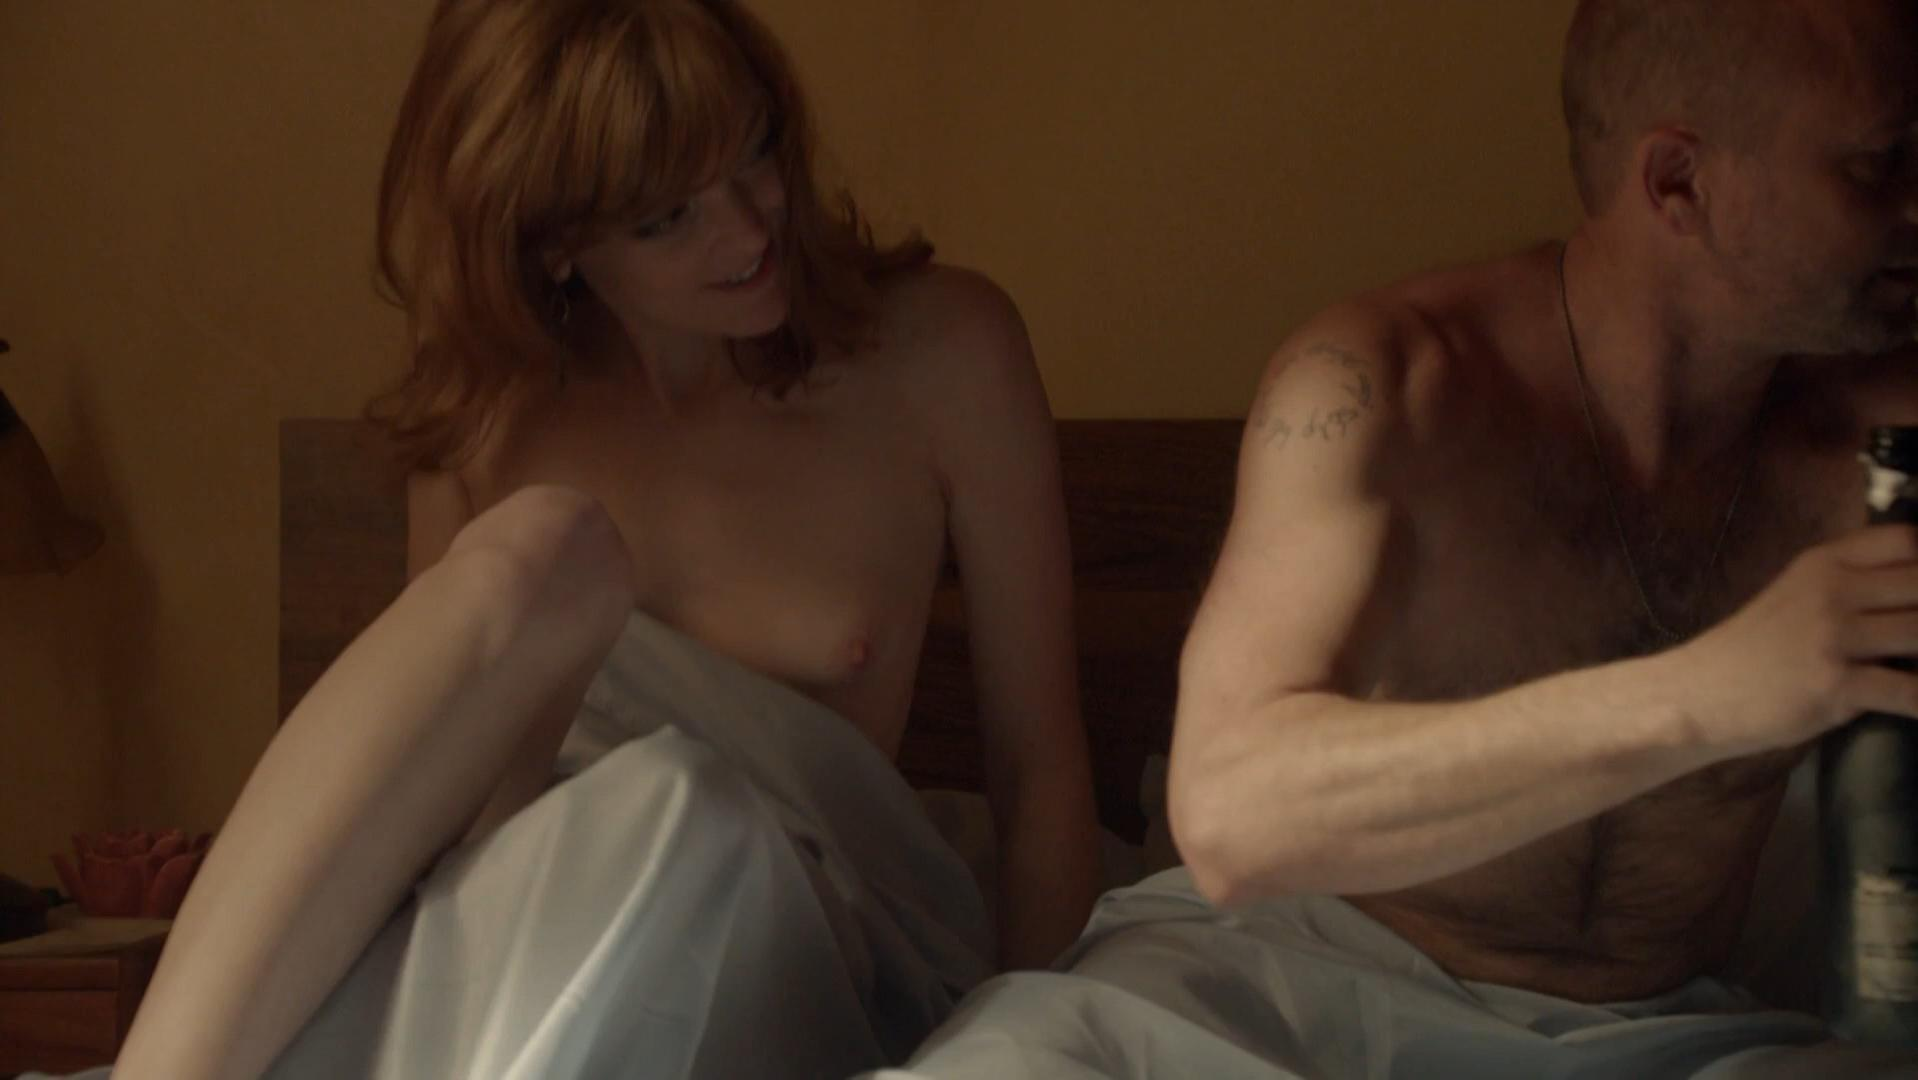 Emily Coutts nude - Transporter The Series s01e02 (2012)